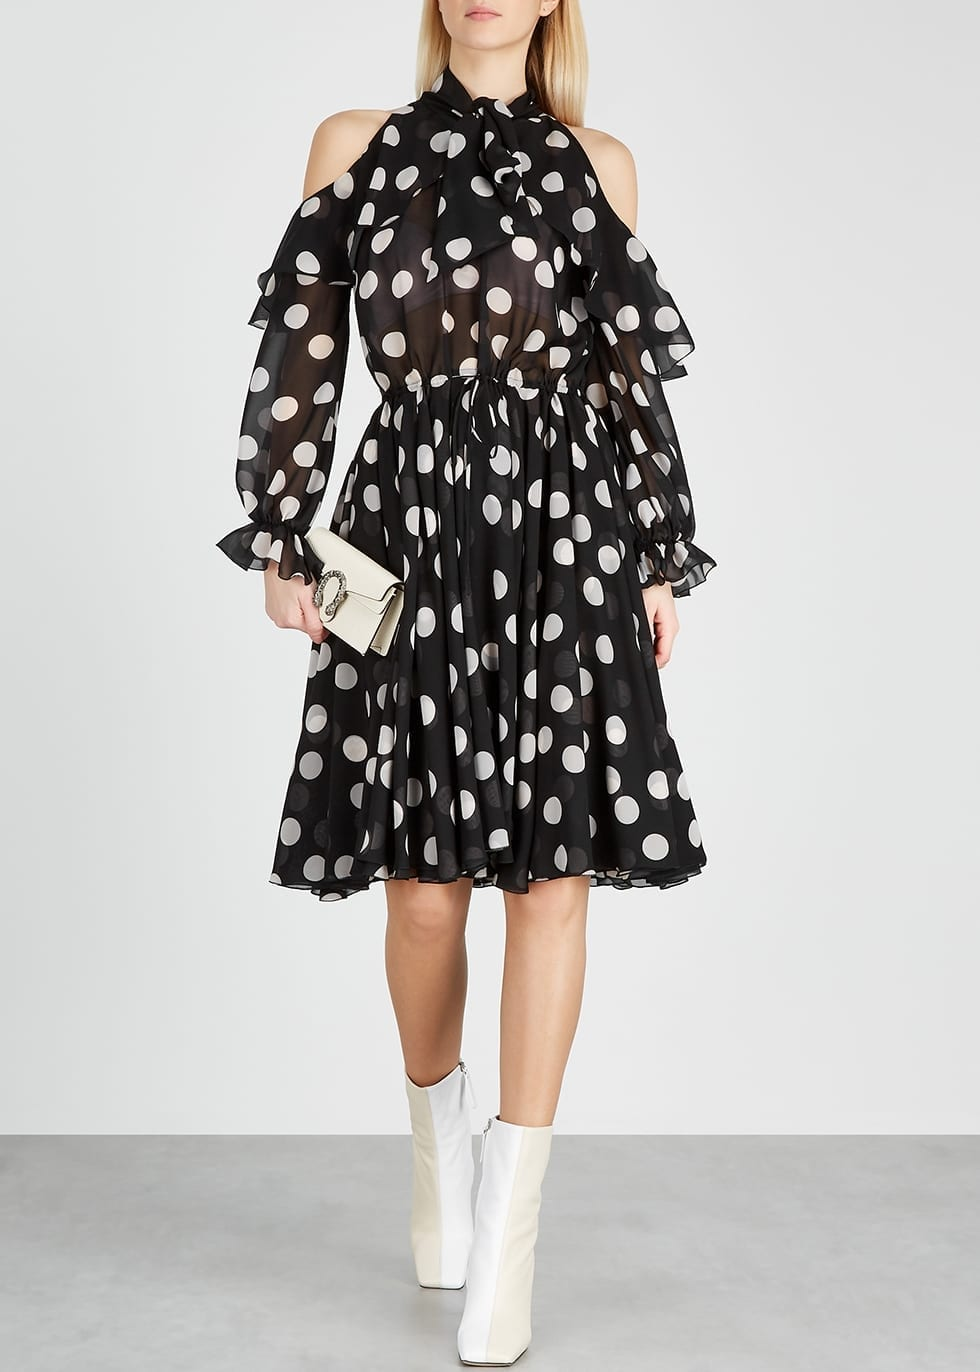 PAULE KA Polka-Dot Cut-Out Midi Dress